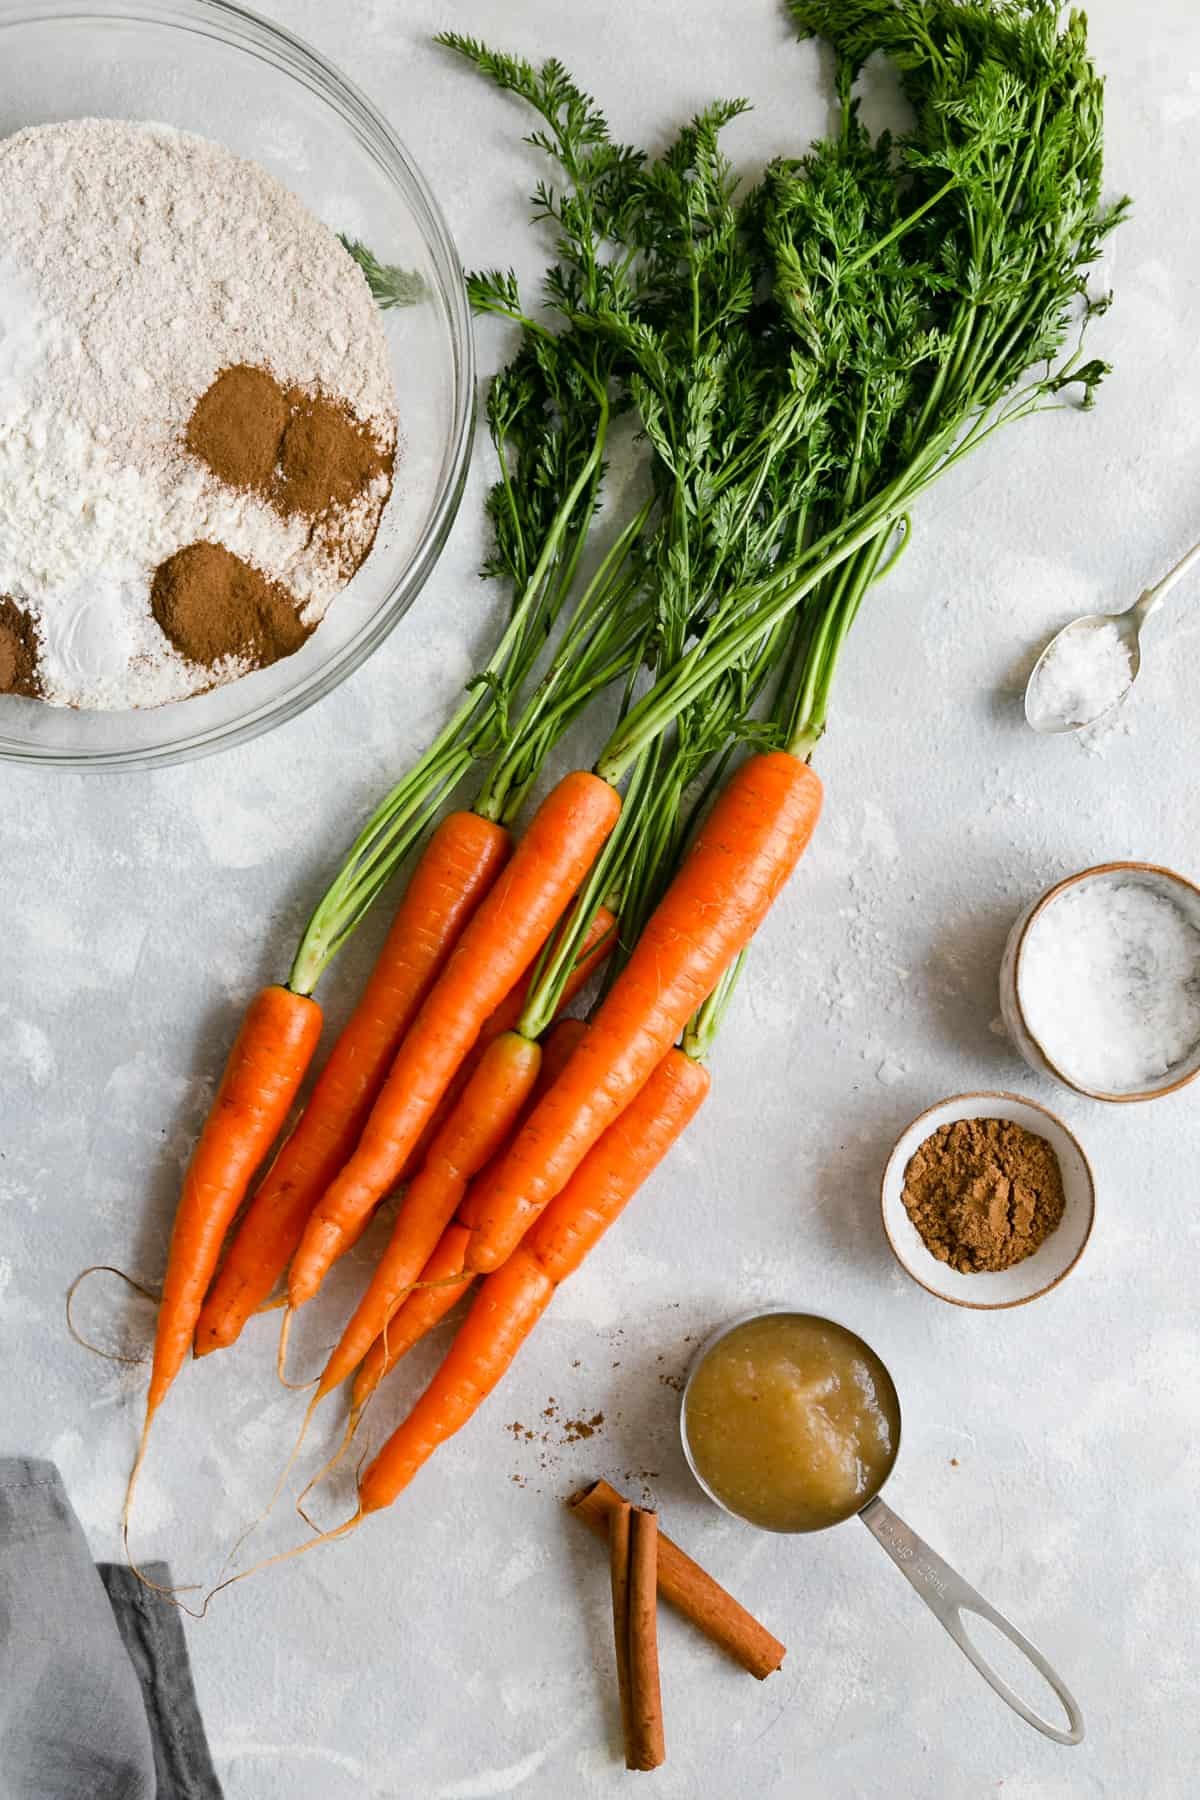 overhead shot of some of the carrot cake ingredients: carrots with tops, flour, apple sauce and spices